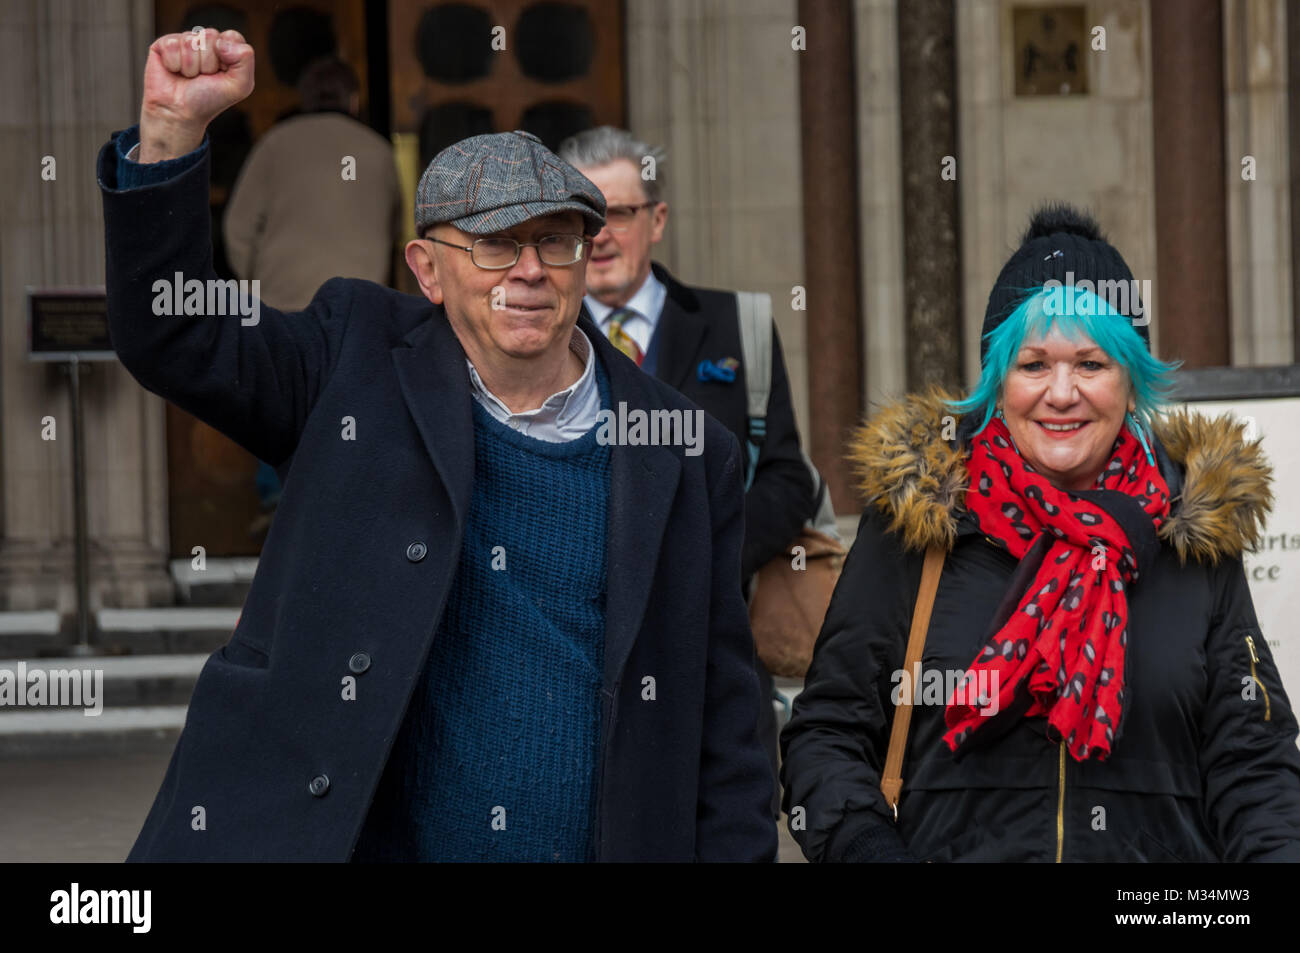 February 8, 2018 - London, UK. 8th February 2018. Ian Bone celebrates in the pub opposite the High Court after stopping - Stock Image